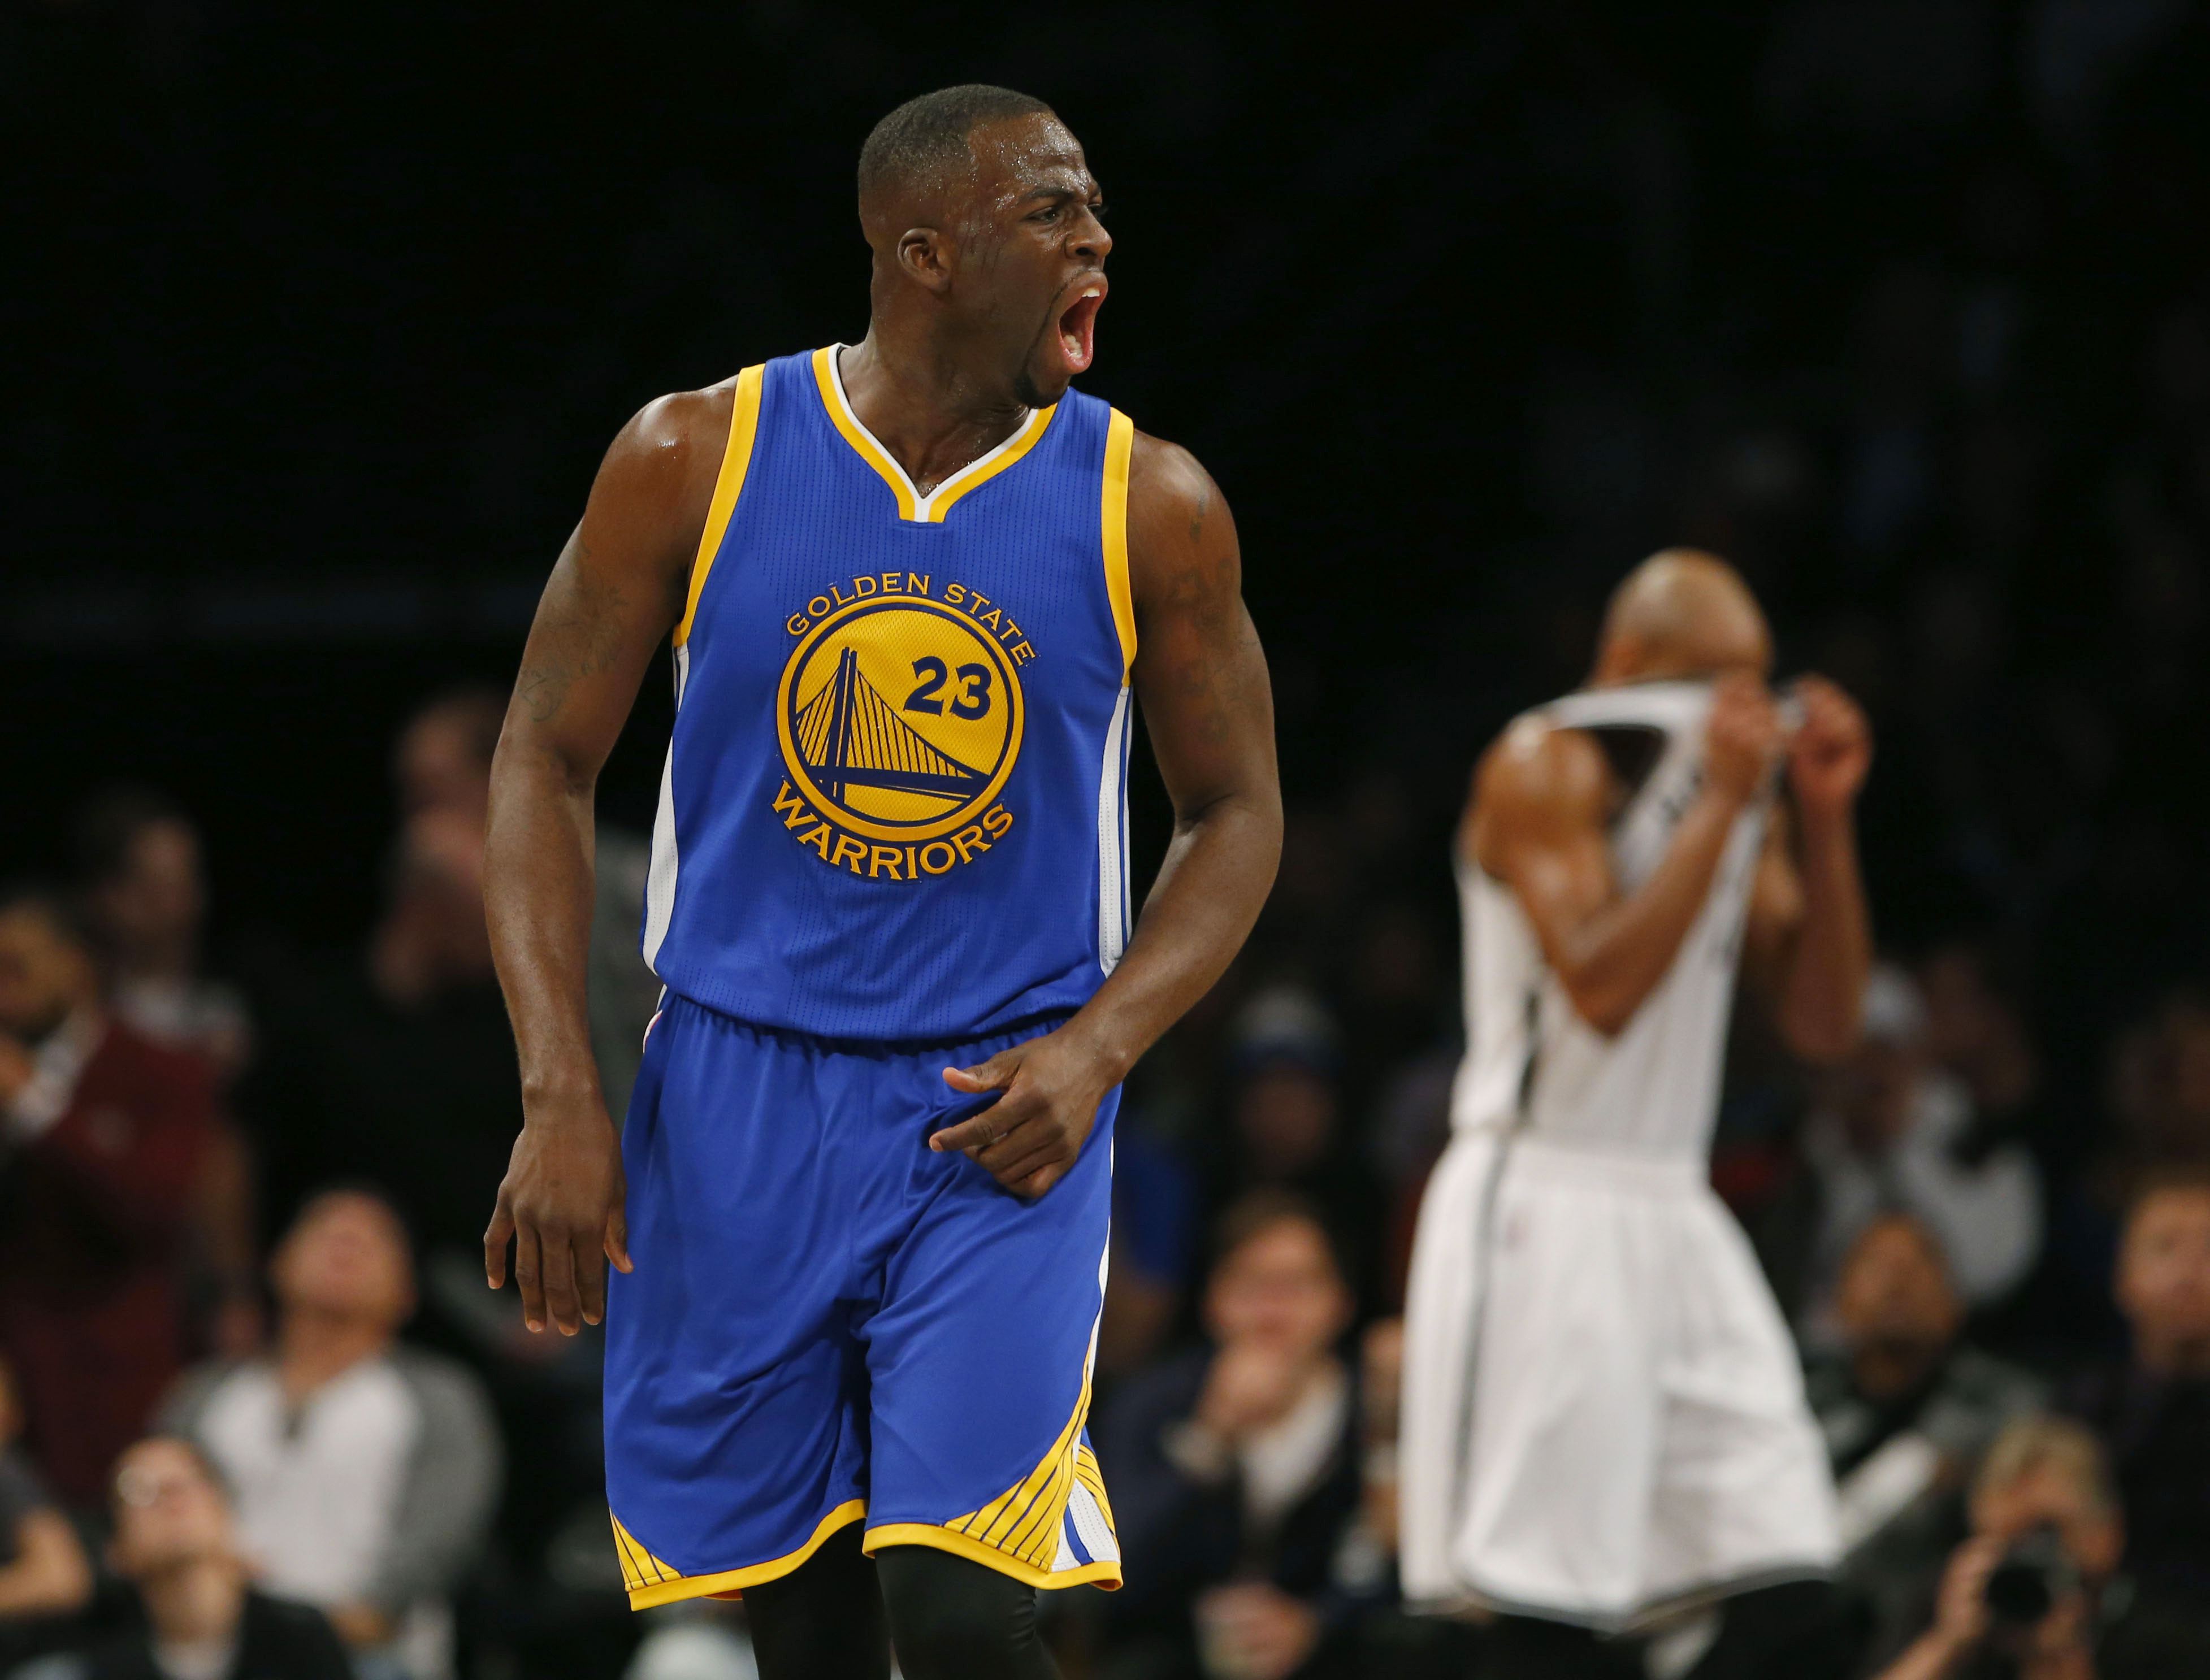 Draymond Green talks trash just like his mother taught him to.